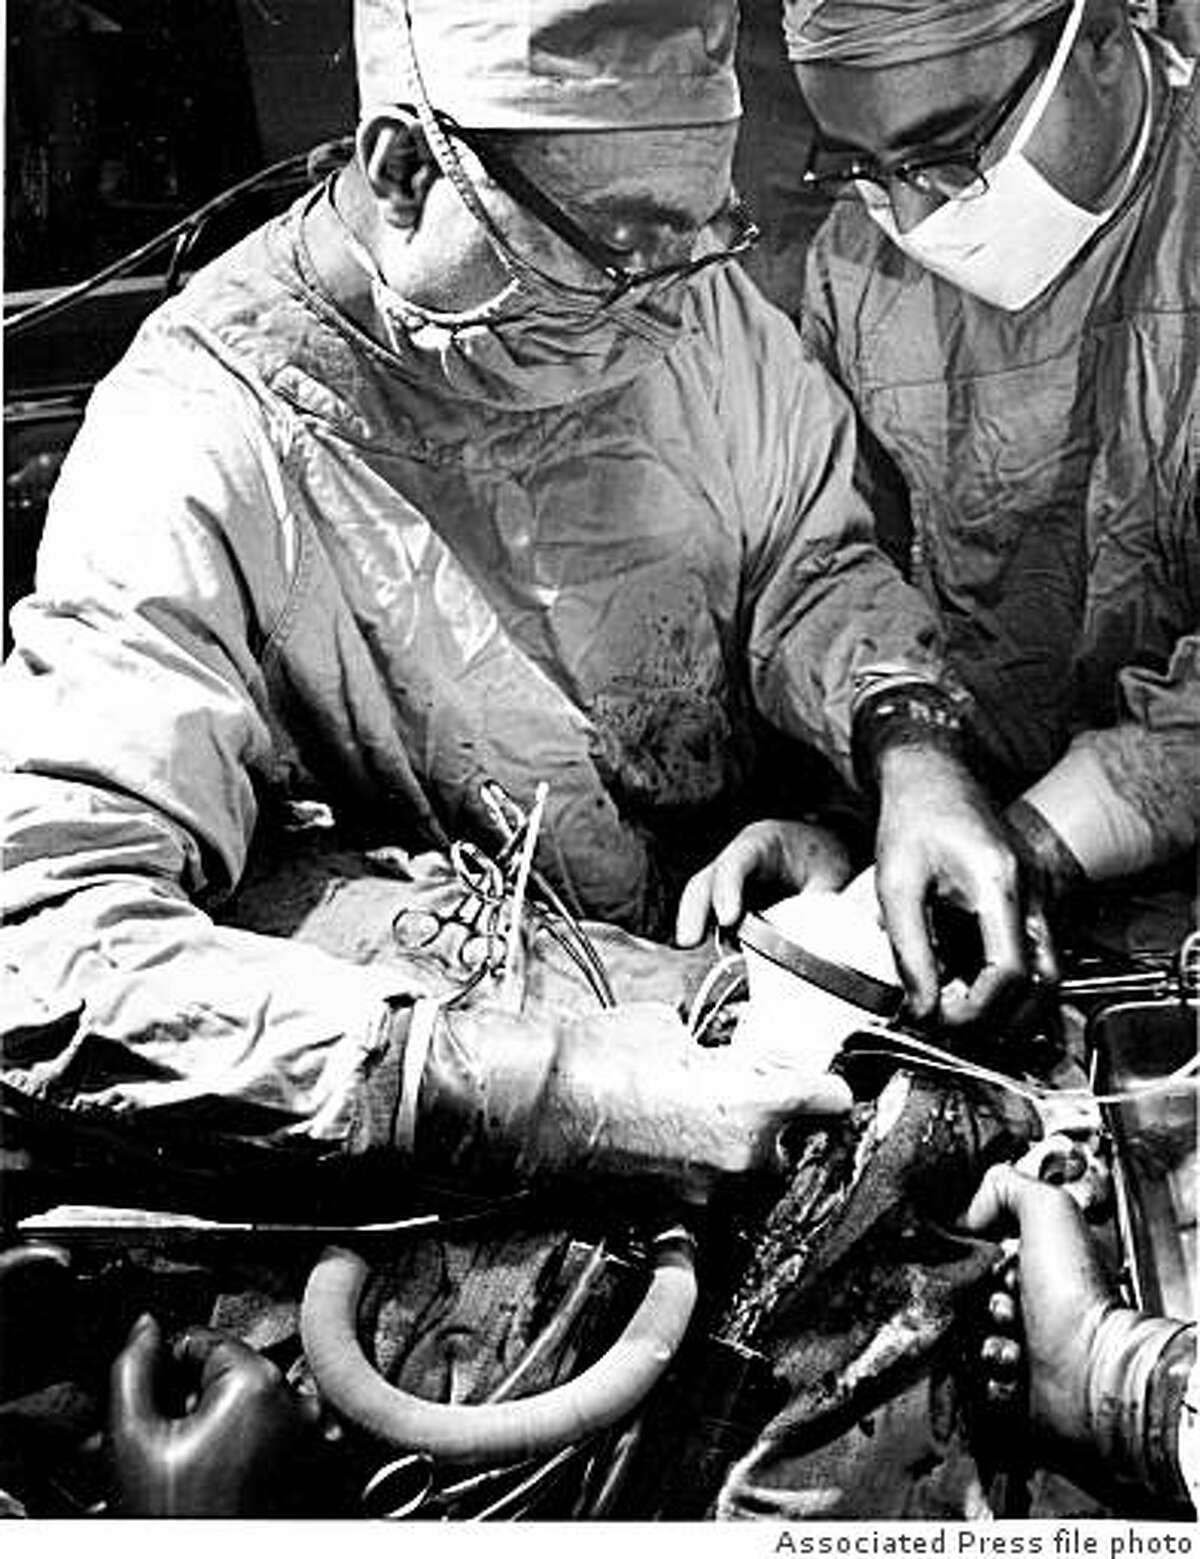 *** FILE *** Dr. Michael E. DeBakey, left, Baylor University Medical School heart surgeon, and one of his team of assistants, implants an artificial heart in patient Marcel L. DeRudder at Methodist Hospital in Houston, Texas, in this April 21, 1966 file photo. DeBakey, the world-famous cardiovascular surgeon who pioneered such now-common procedures as bypass surgery and invented a host of devices to help heart patients, died Friday night July 11, 2008 at The Methodist Hospital in Houston, officials announced. He was 99. (AP Photo, FILE)